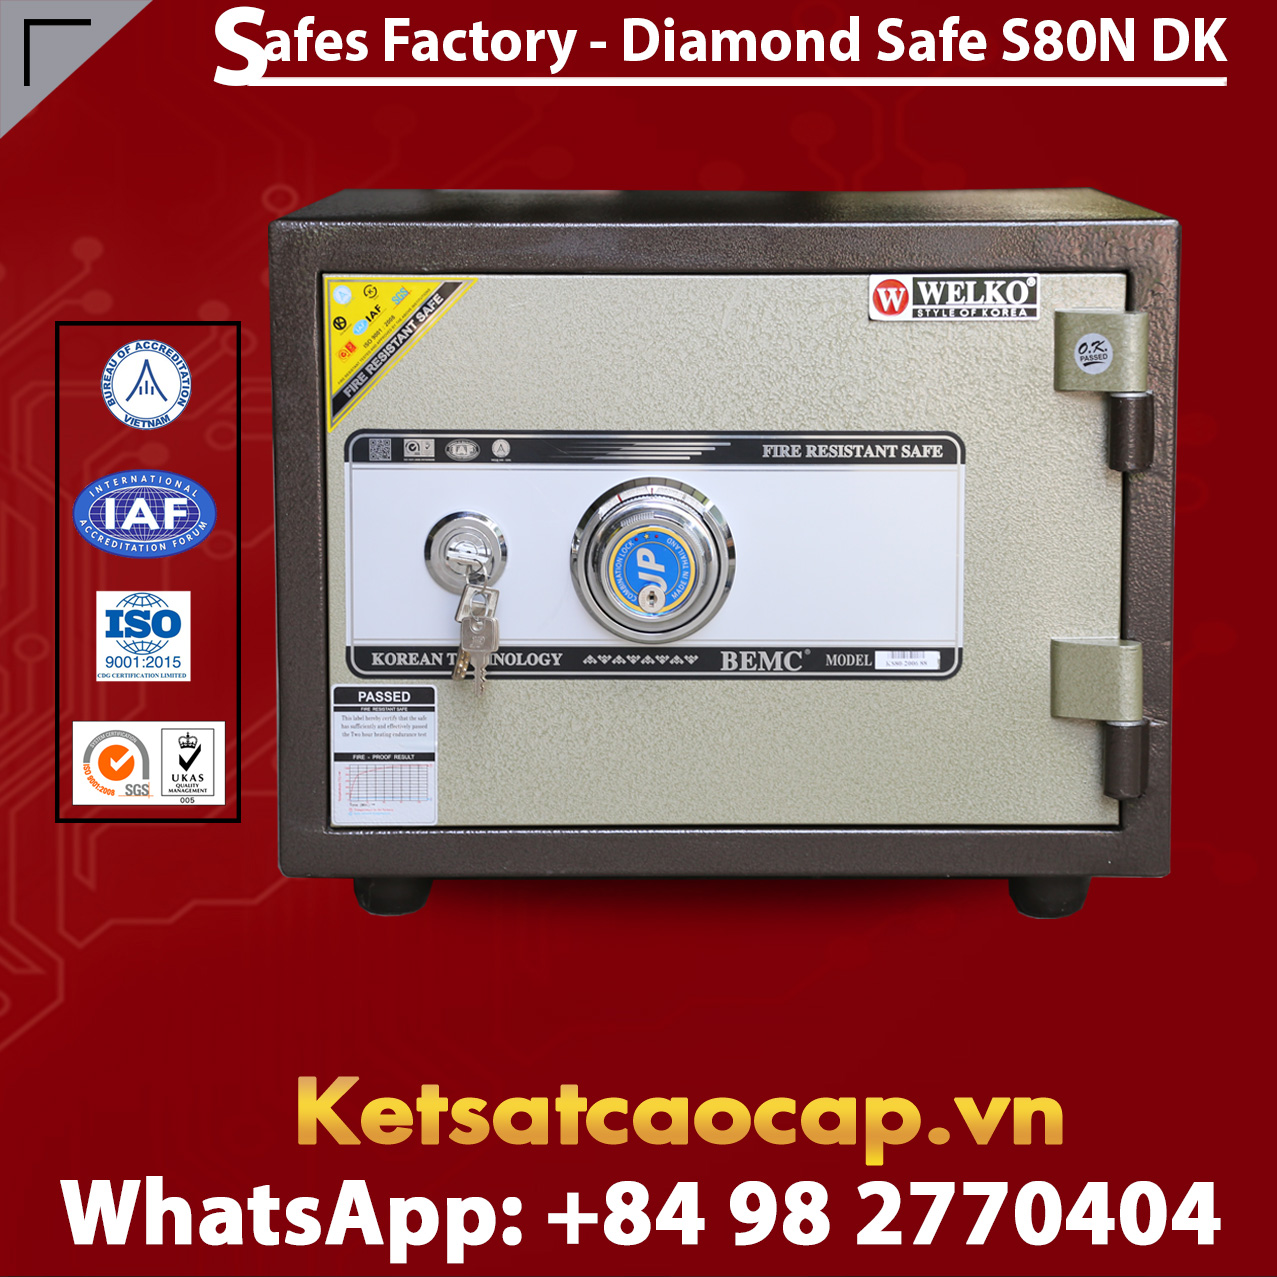 Diamond Safe KS80N DK Black